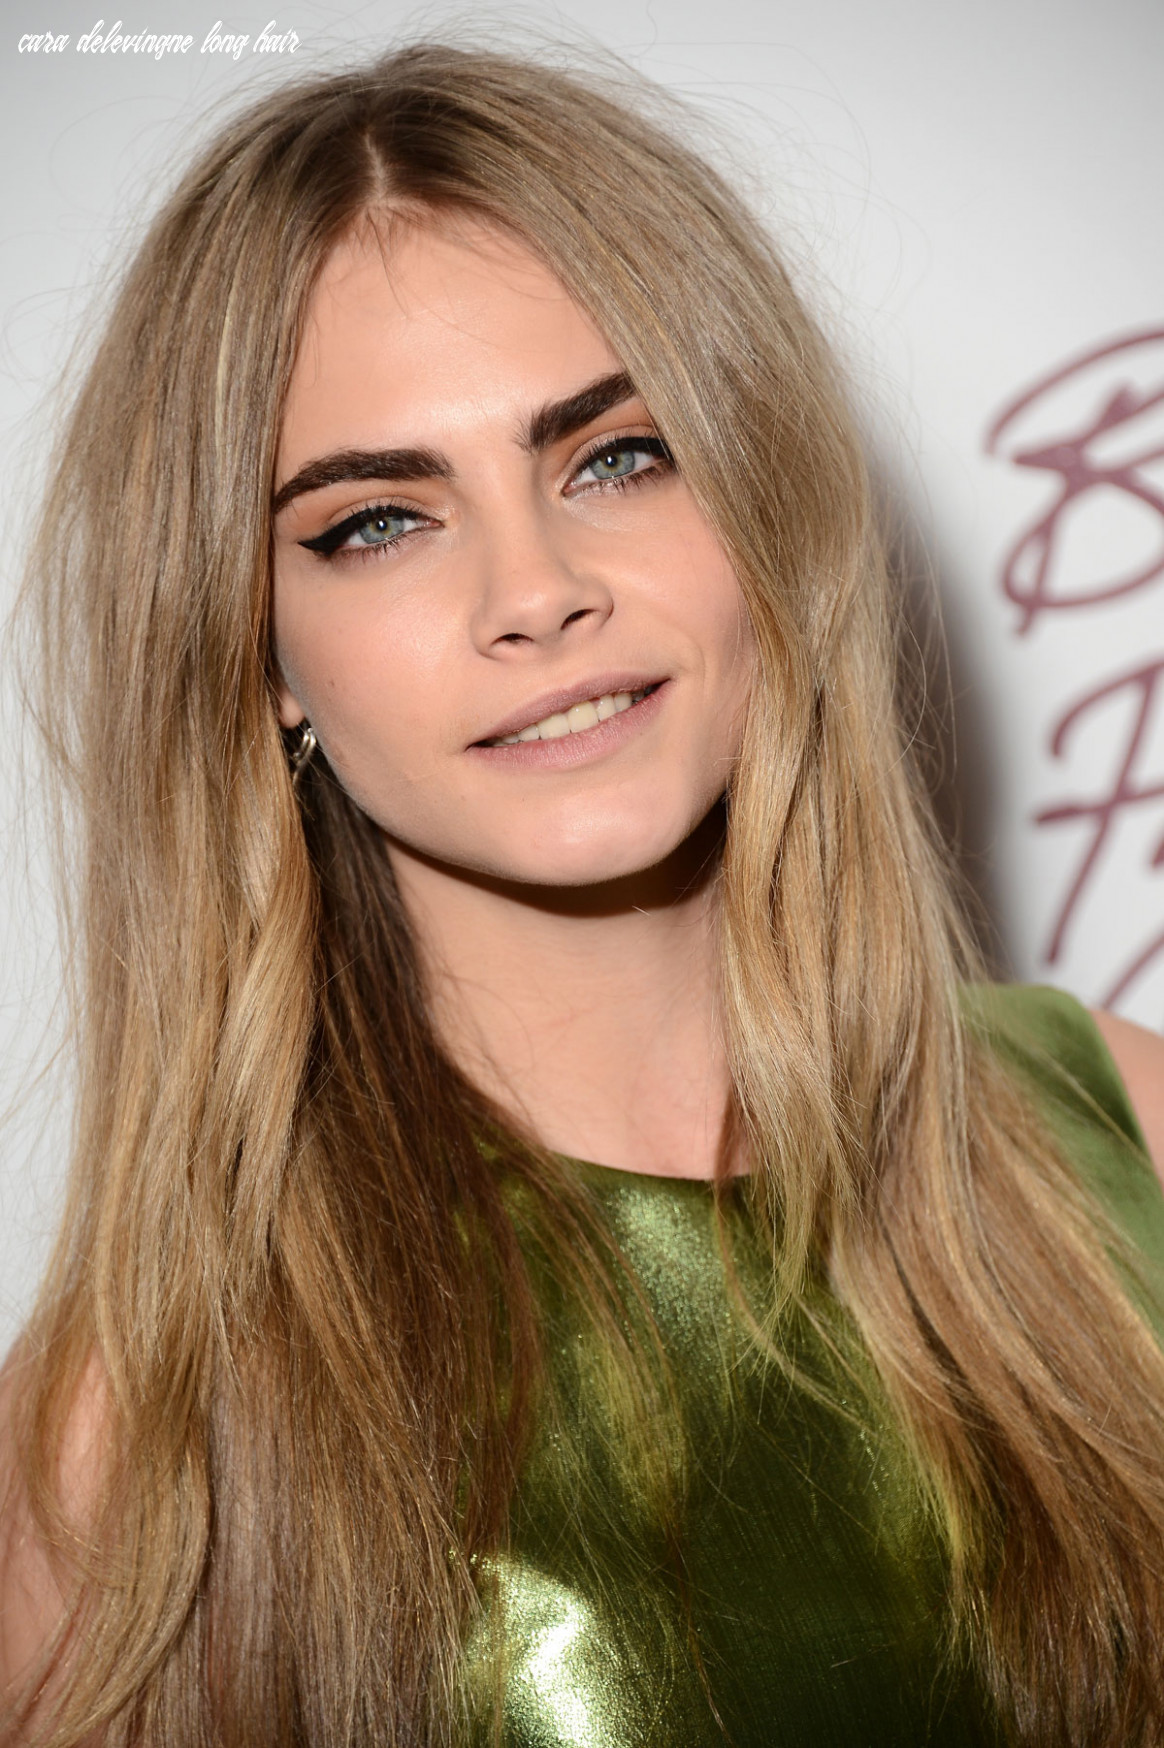 Cara Delevingne Haircut Photos Latest | Latest Hairstyles